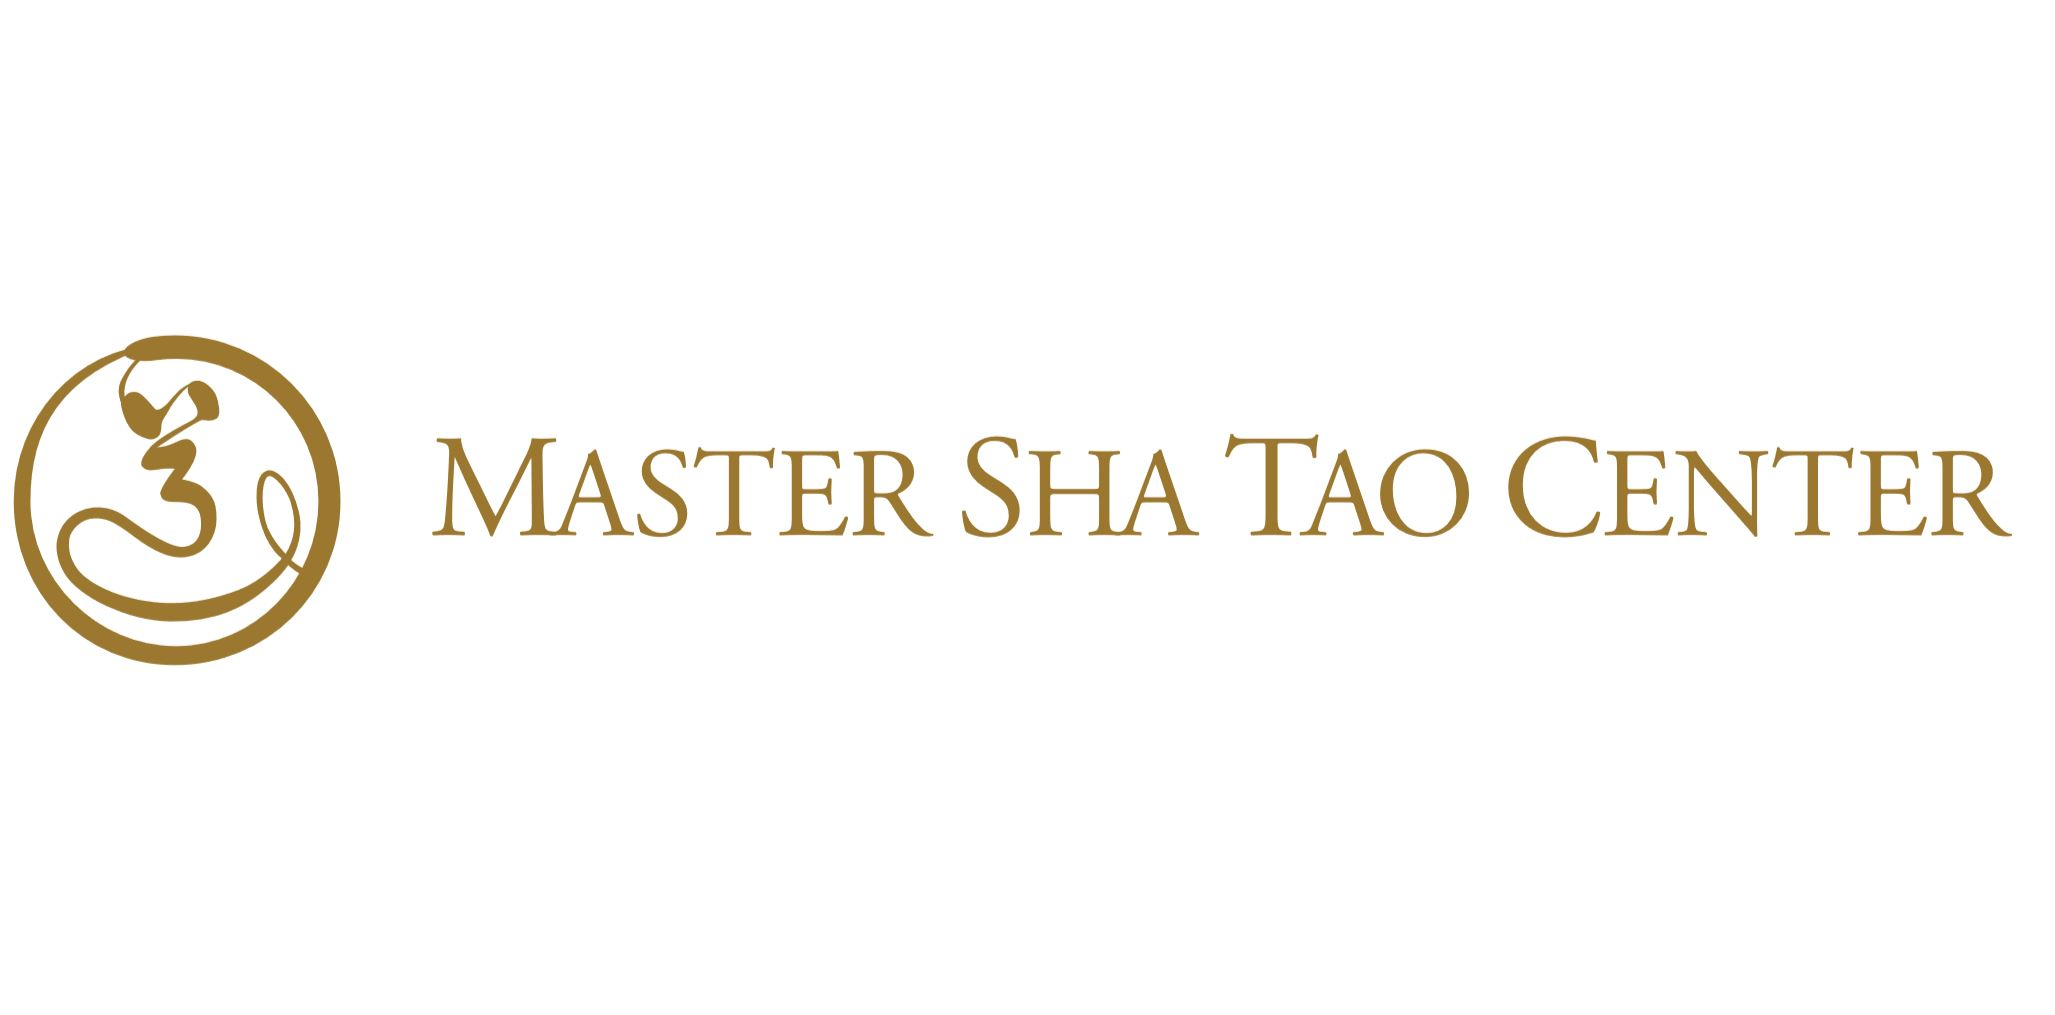 We're offering a complimentary Tao Chang meditation session for victims of date rape drugs.